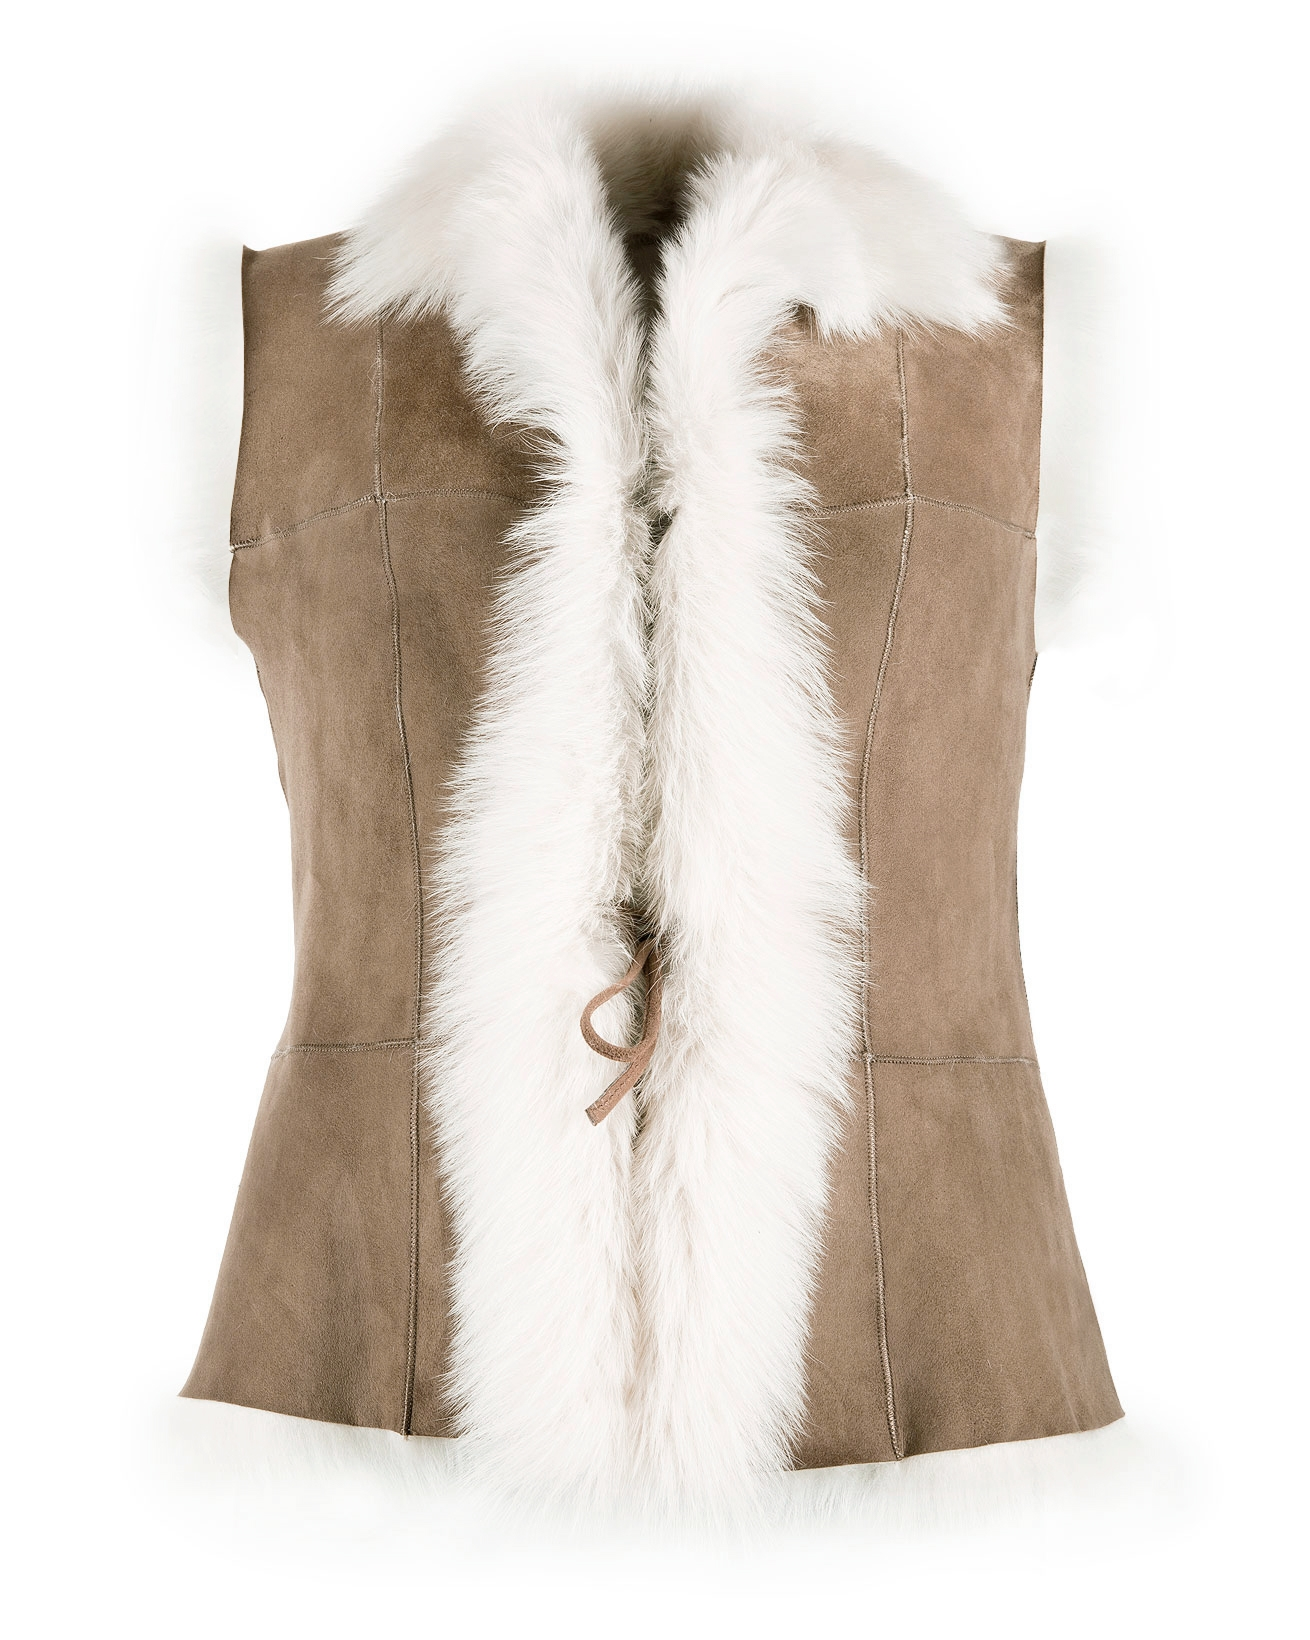 5800-gilet-white coffee-smooth front-aw18 rev art.jpg